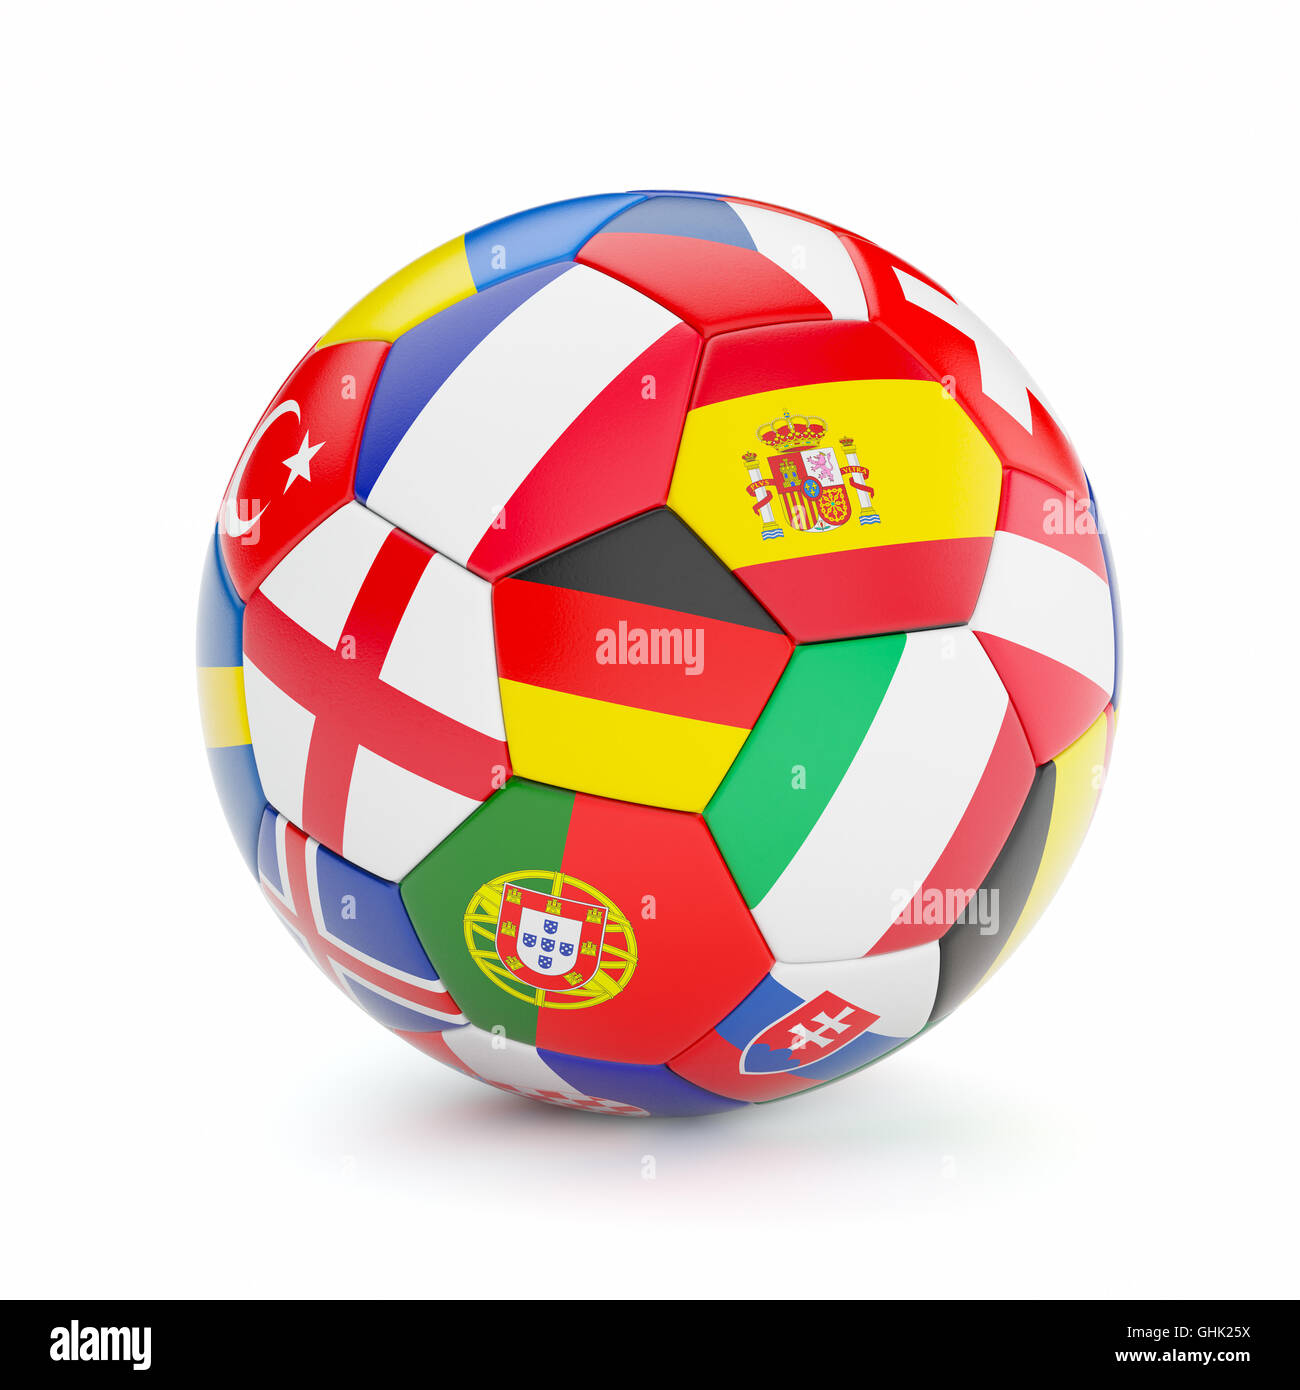 Soccer Football Ball With Europe Countries Flags Stock Photo Alamy